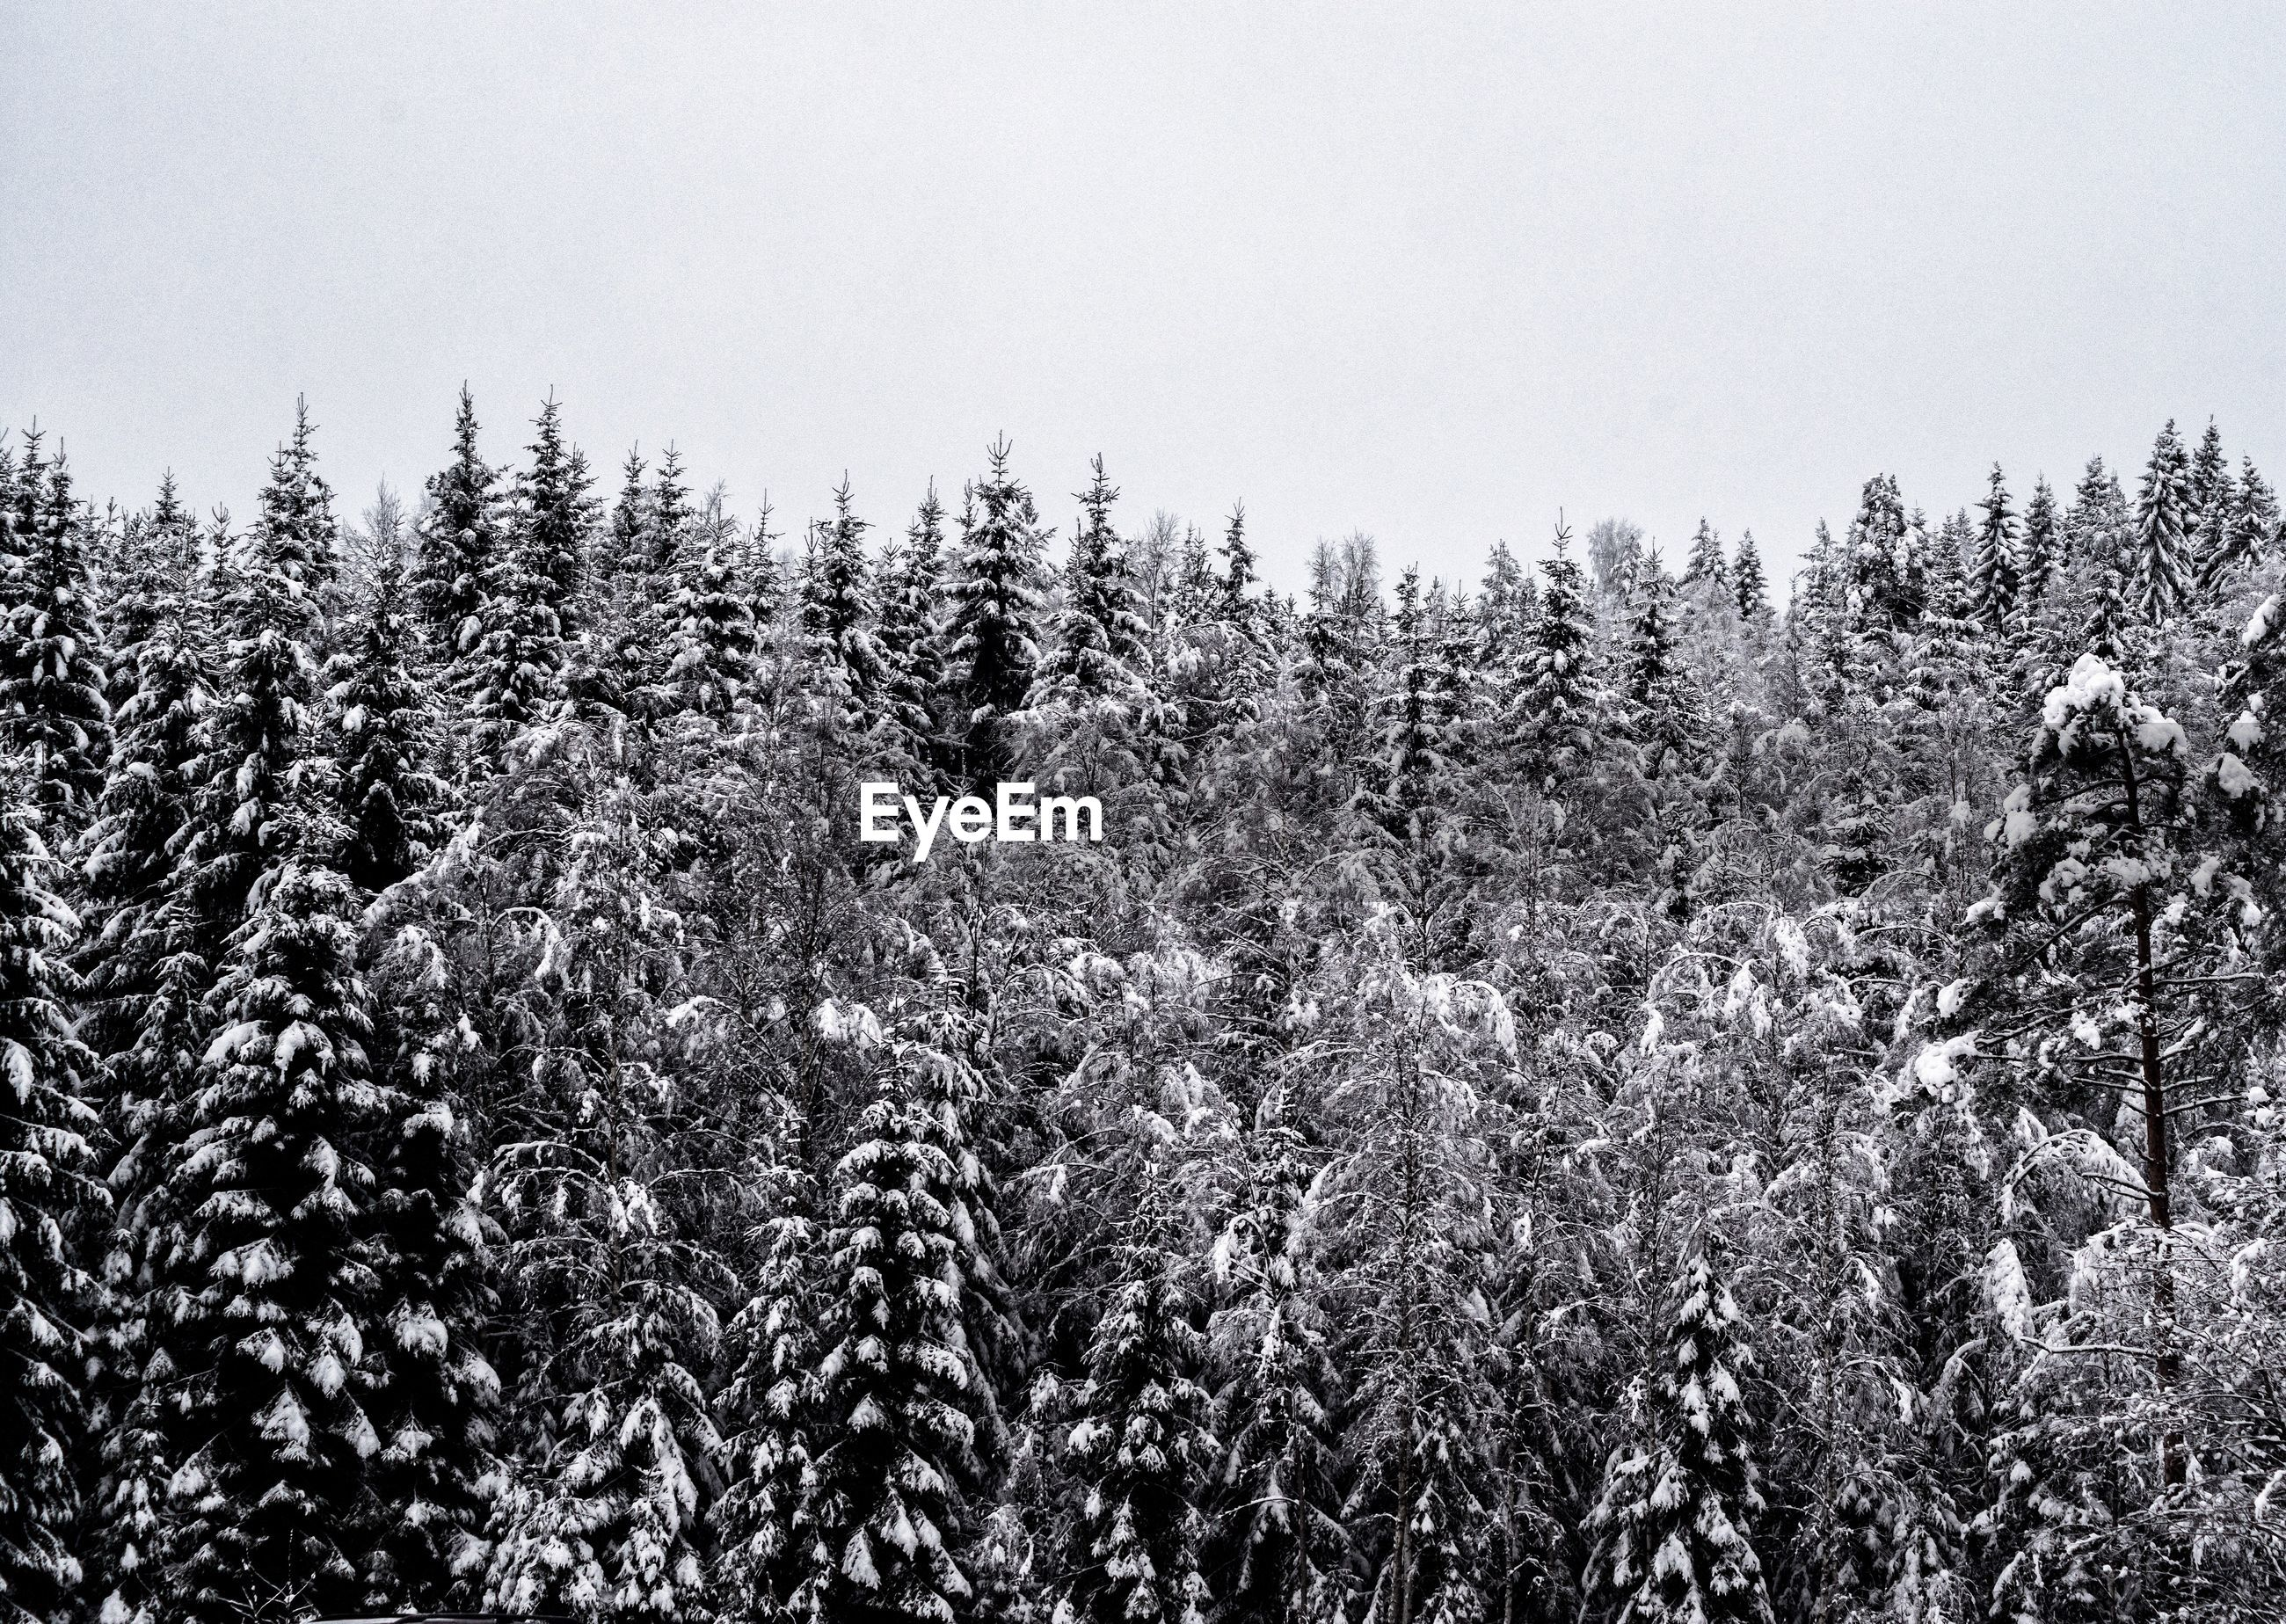 PLANTS GROWING ON SNOW COVERED LANDSCAPE